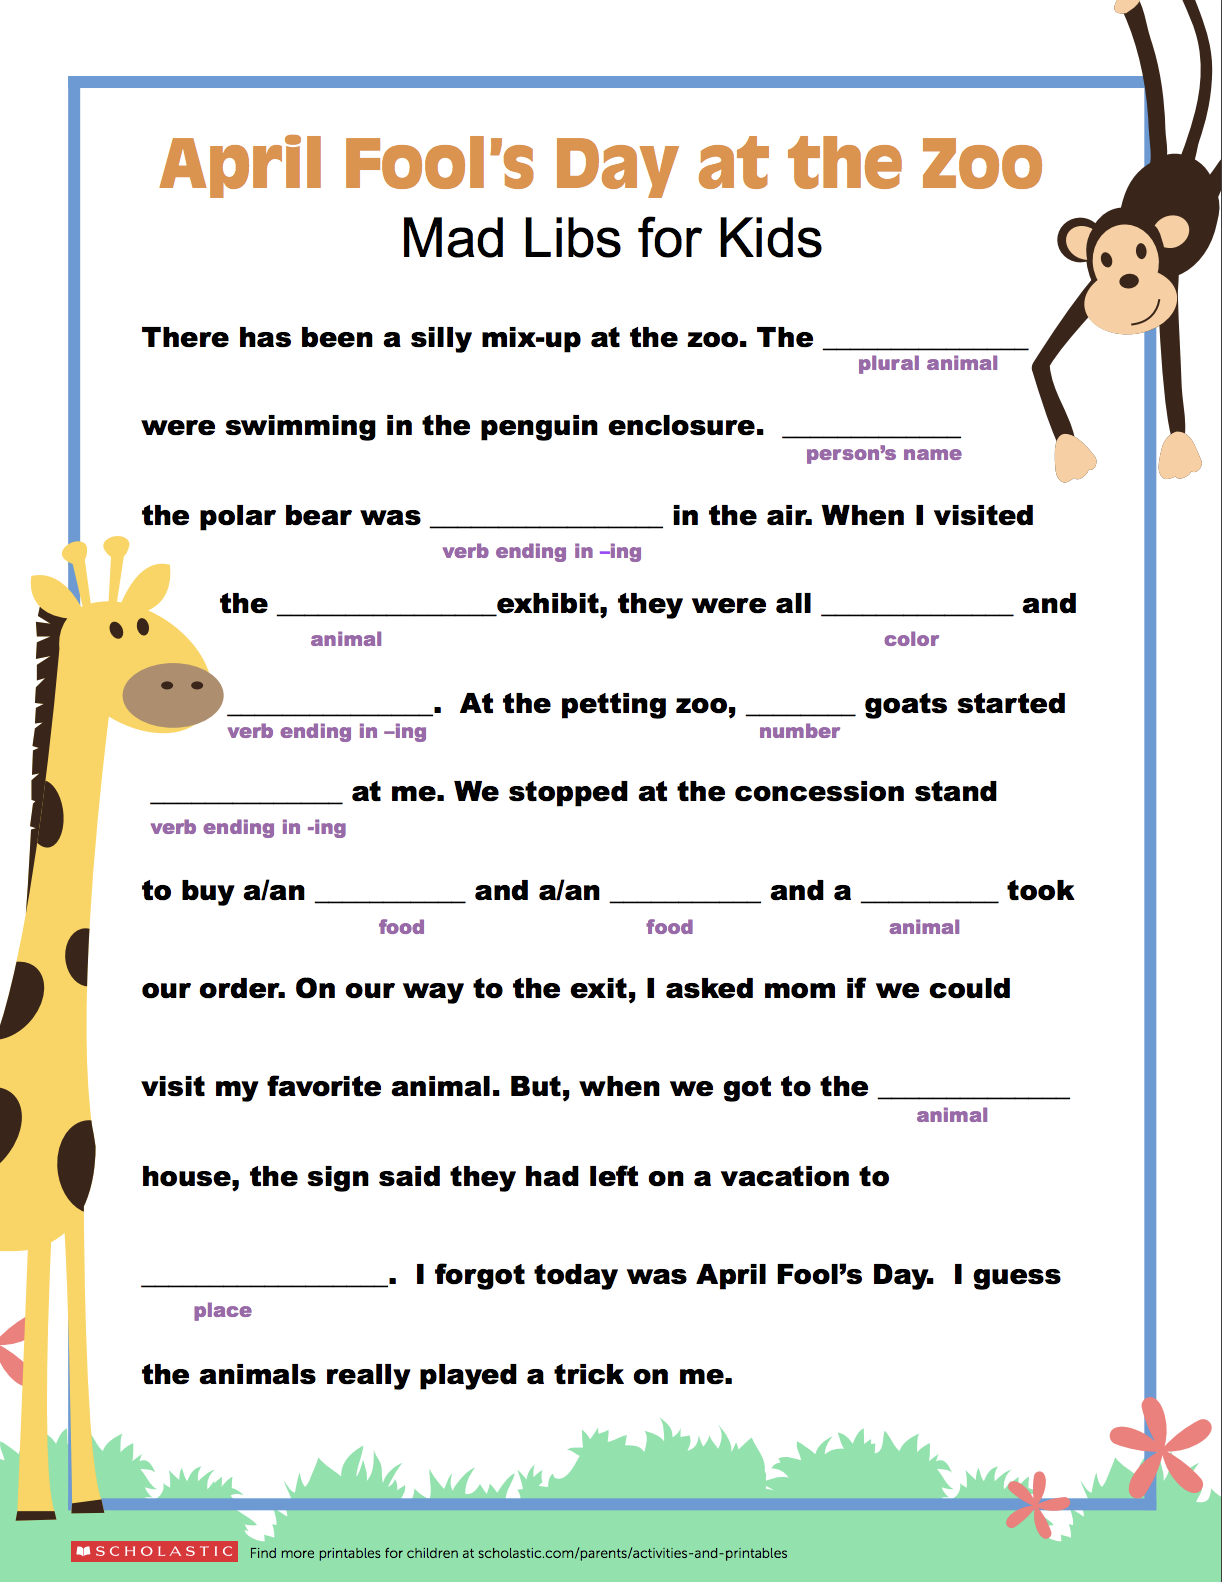 medium resolution of Tickle your creative writer's funny bone with this zany Mad Libs printable  that's perfect for April Fool's Day! 📝   Kids mad libs